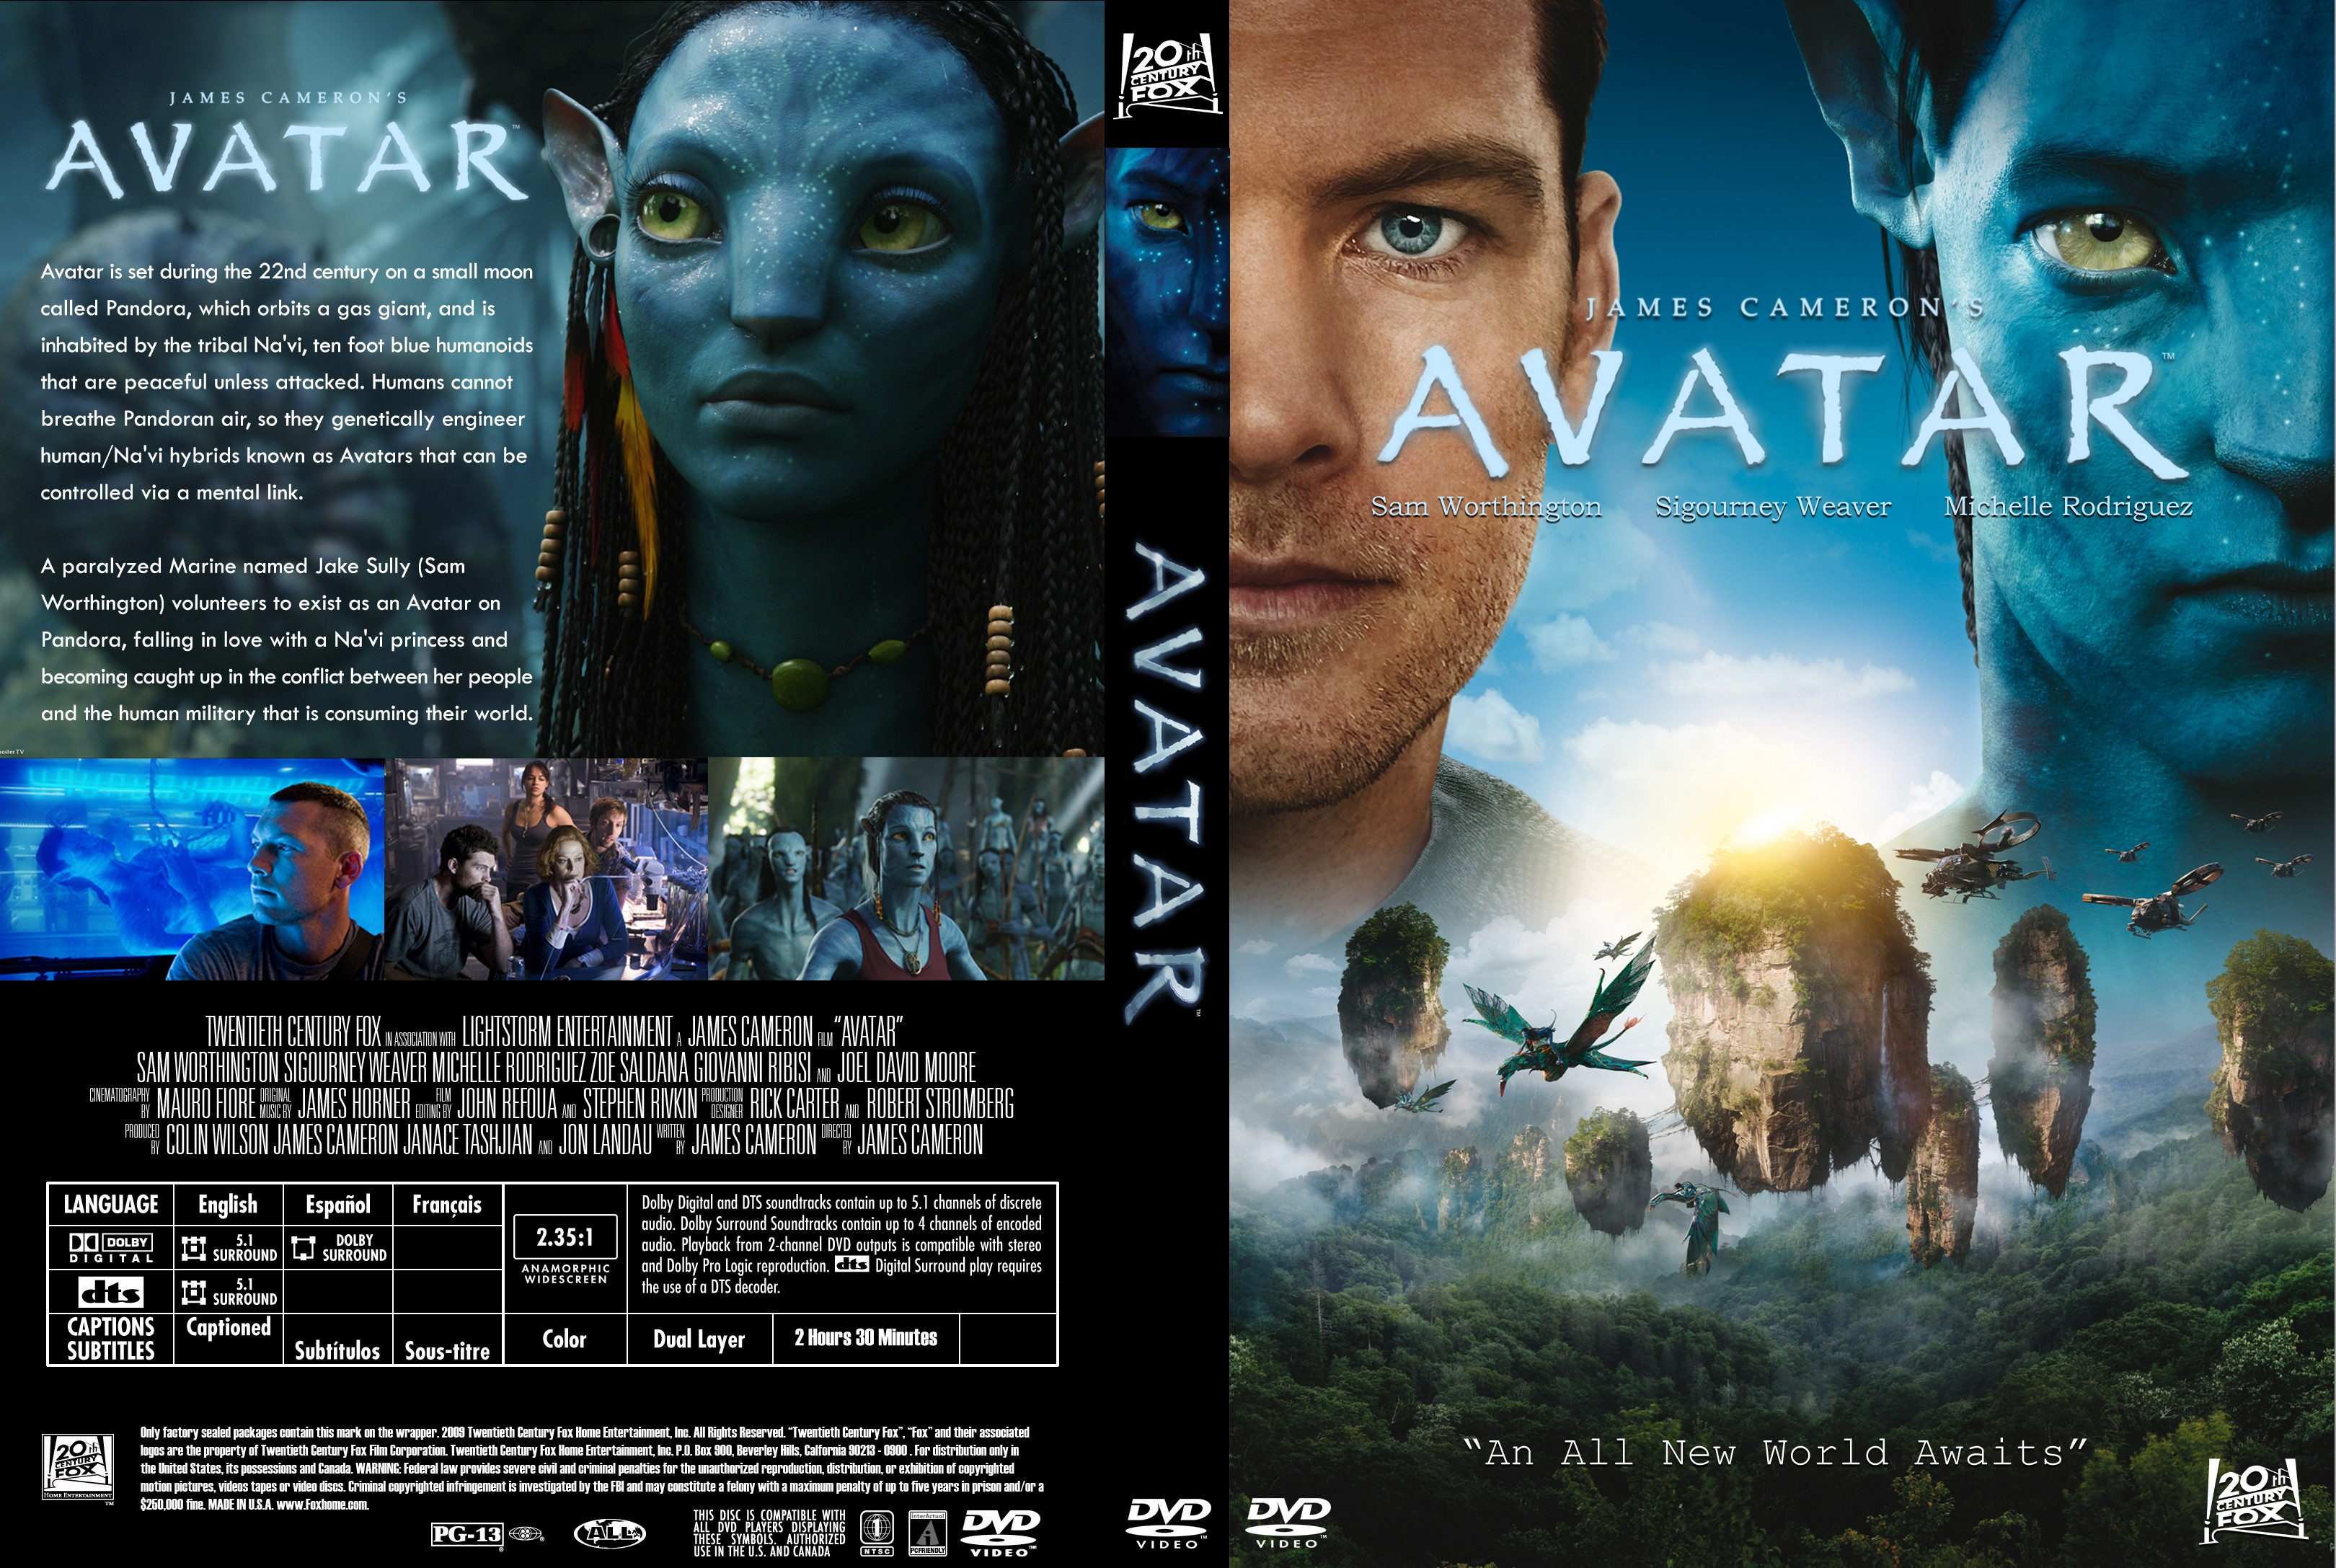 Book Cover Portadas Hd ~ Caratulas dvd avatar bluray